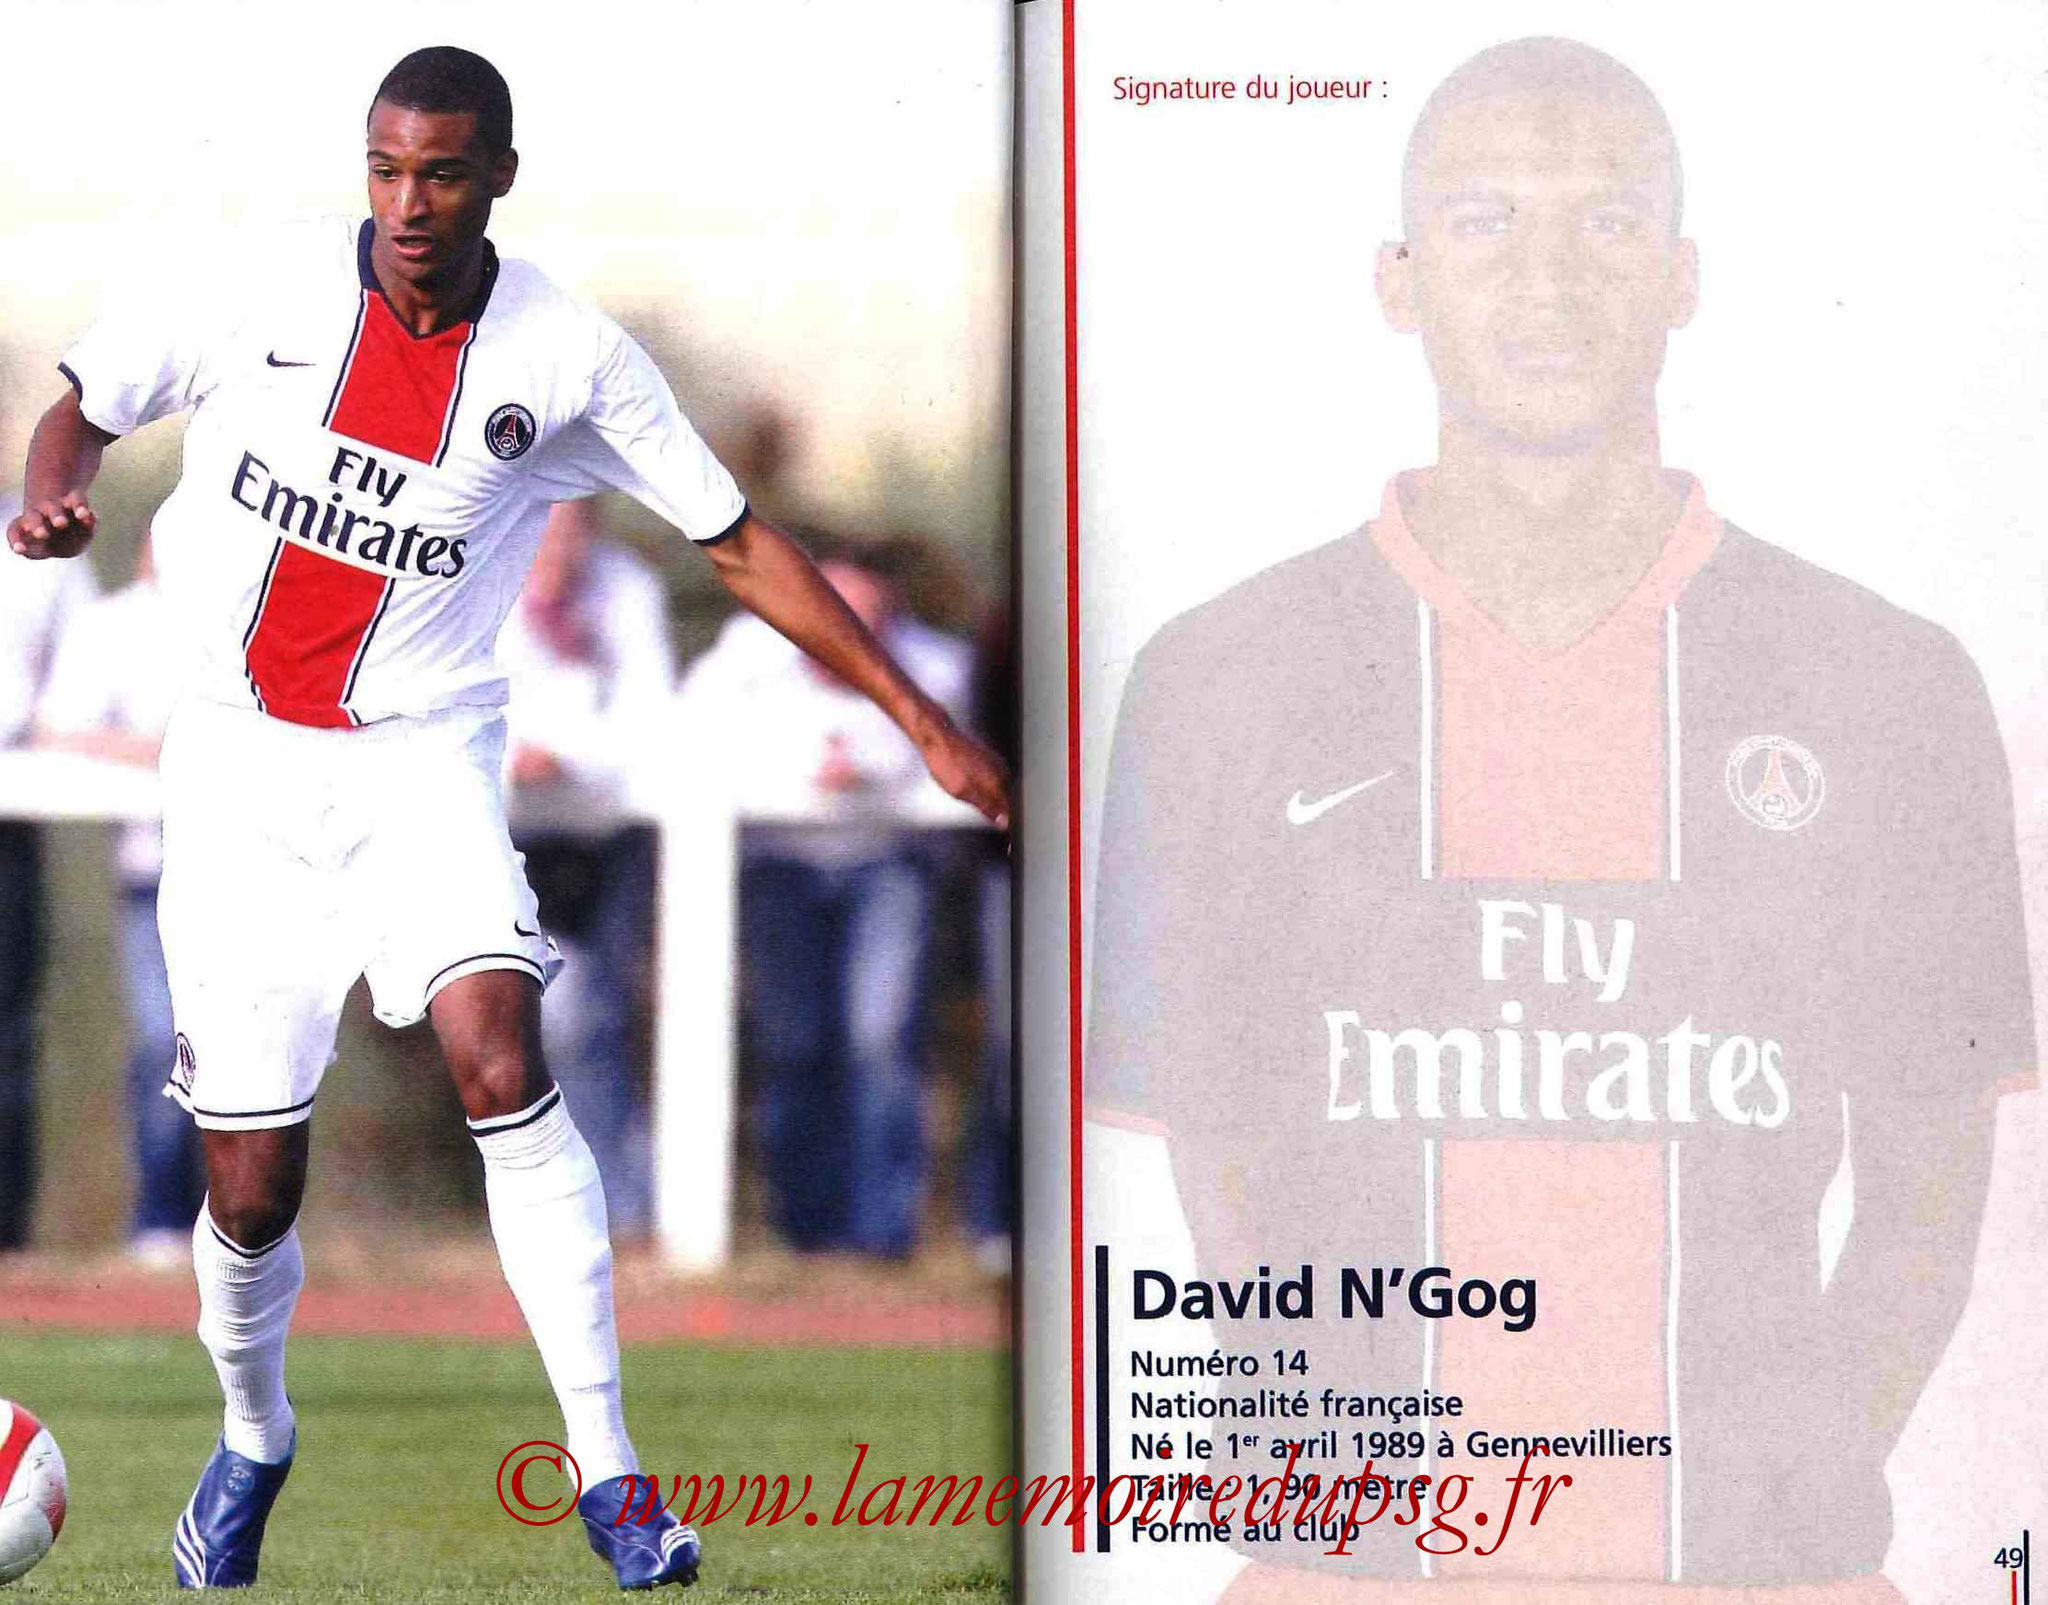 2007-08 - Guide de la Saison PSG - Pages 48 et 49 - David N'GOG